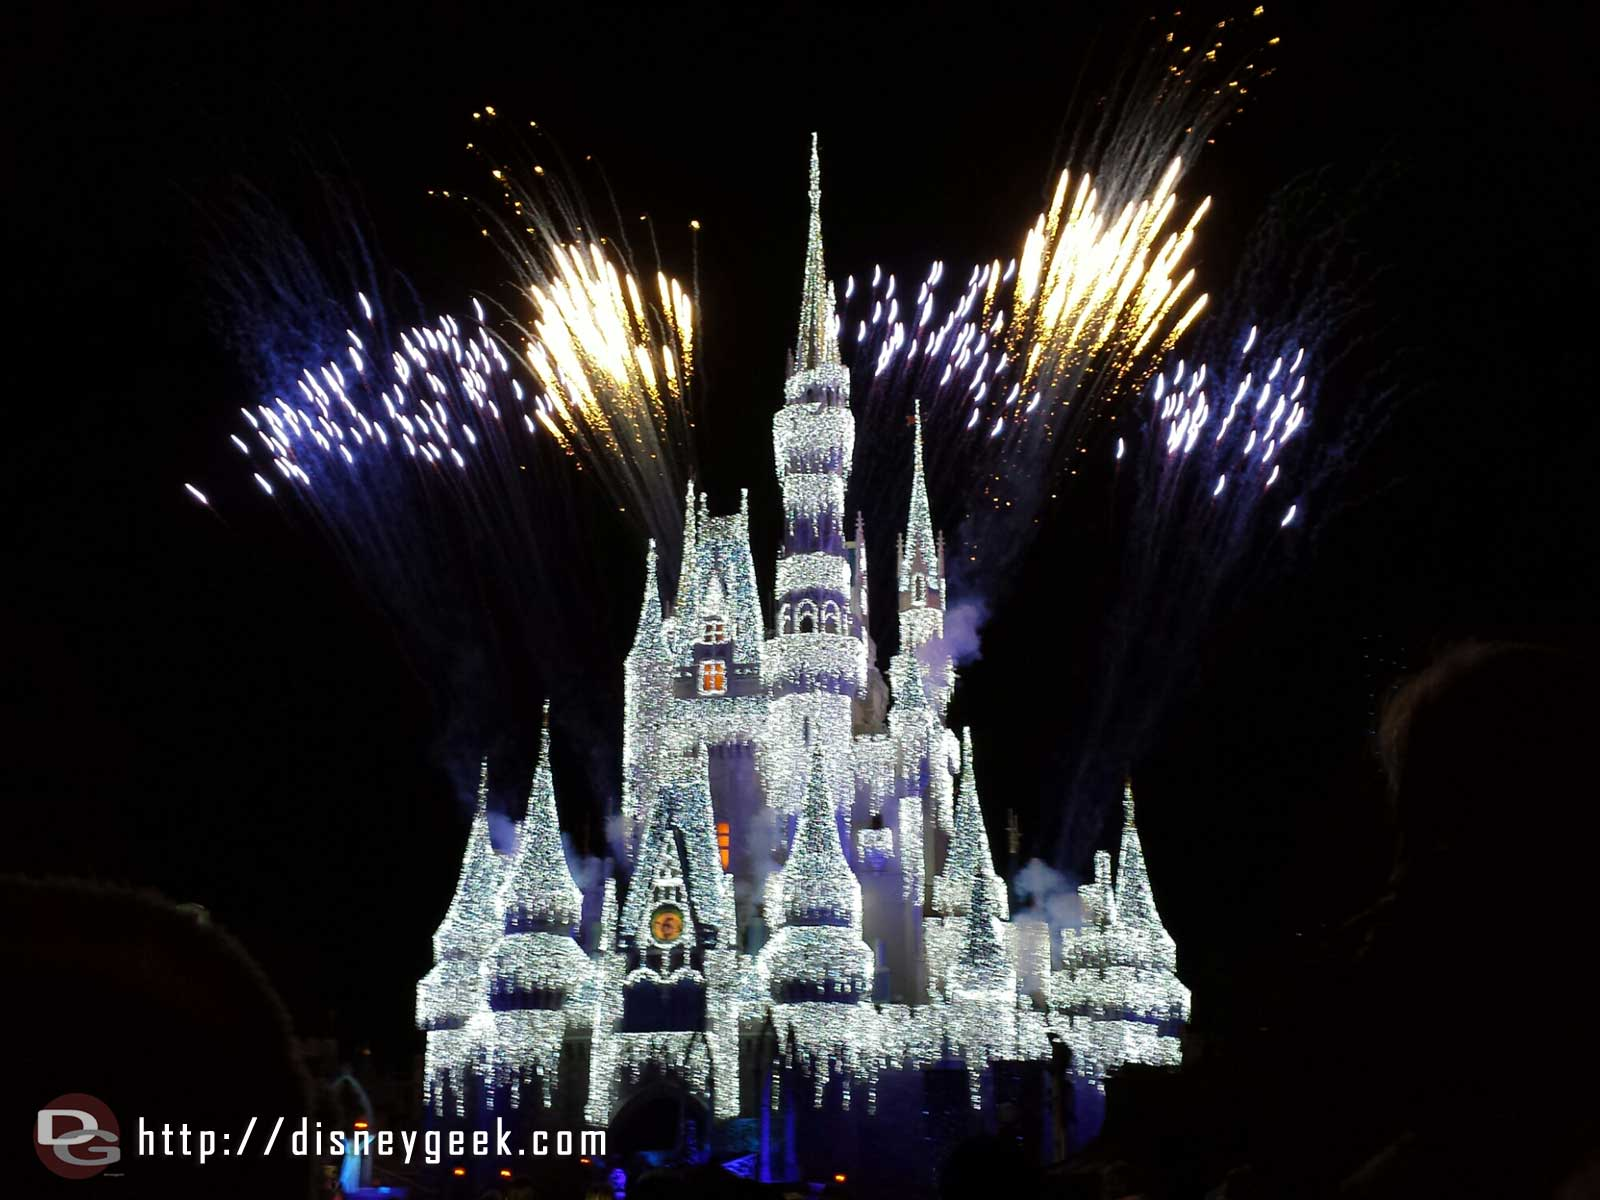 #Frozen Holiday Wish finale #WDW Magic Kingdom